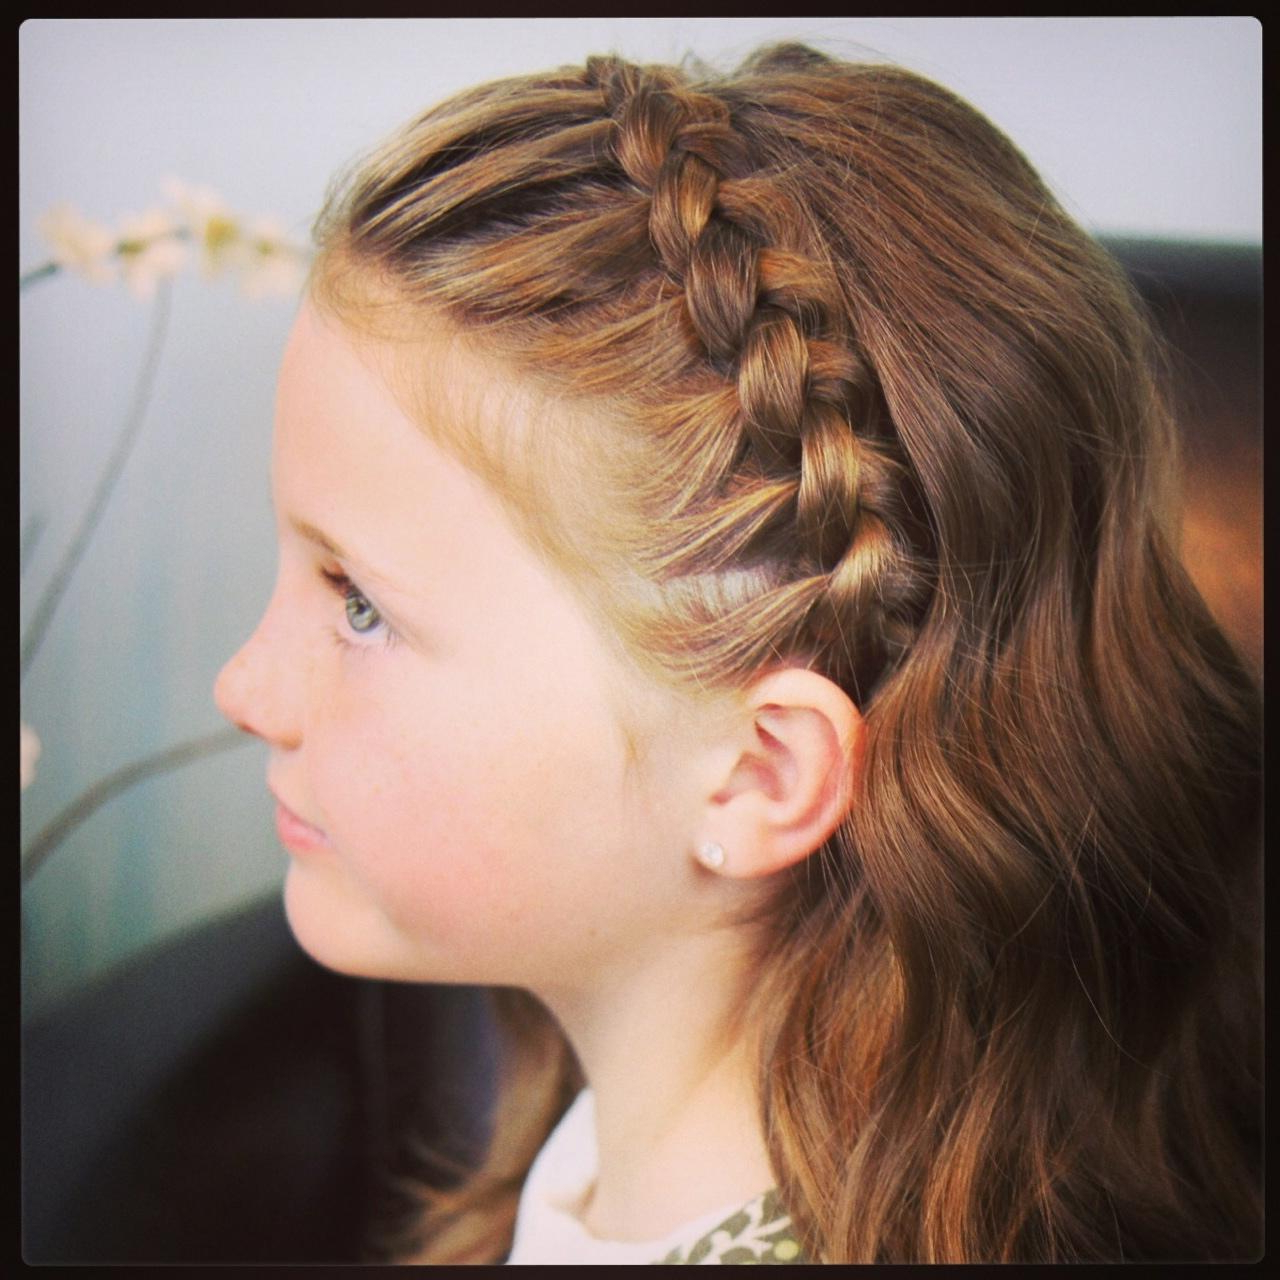 Cute Long Little Girls Hairstyles For School: How To Style Braid Regarding Cool Hairstyles For Short Hair Girl (View 22 of 25)